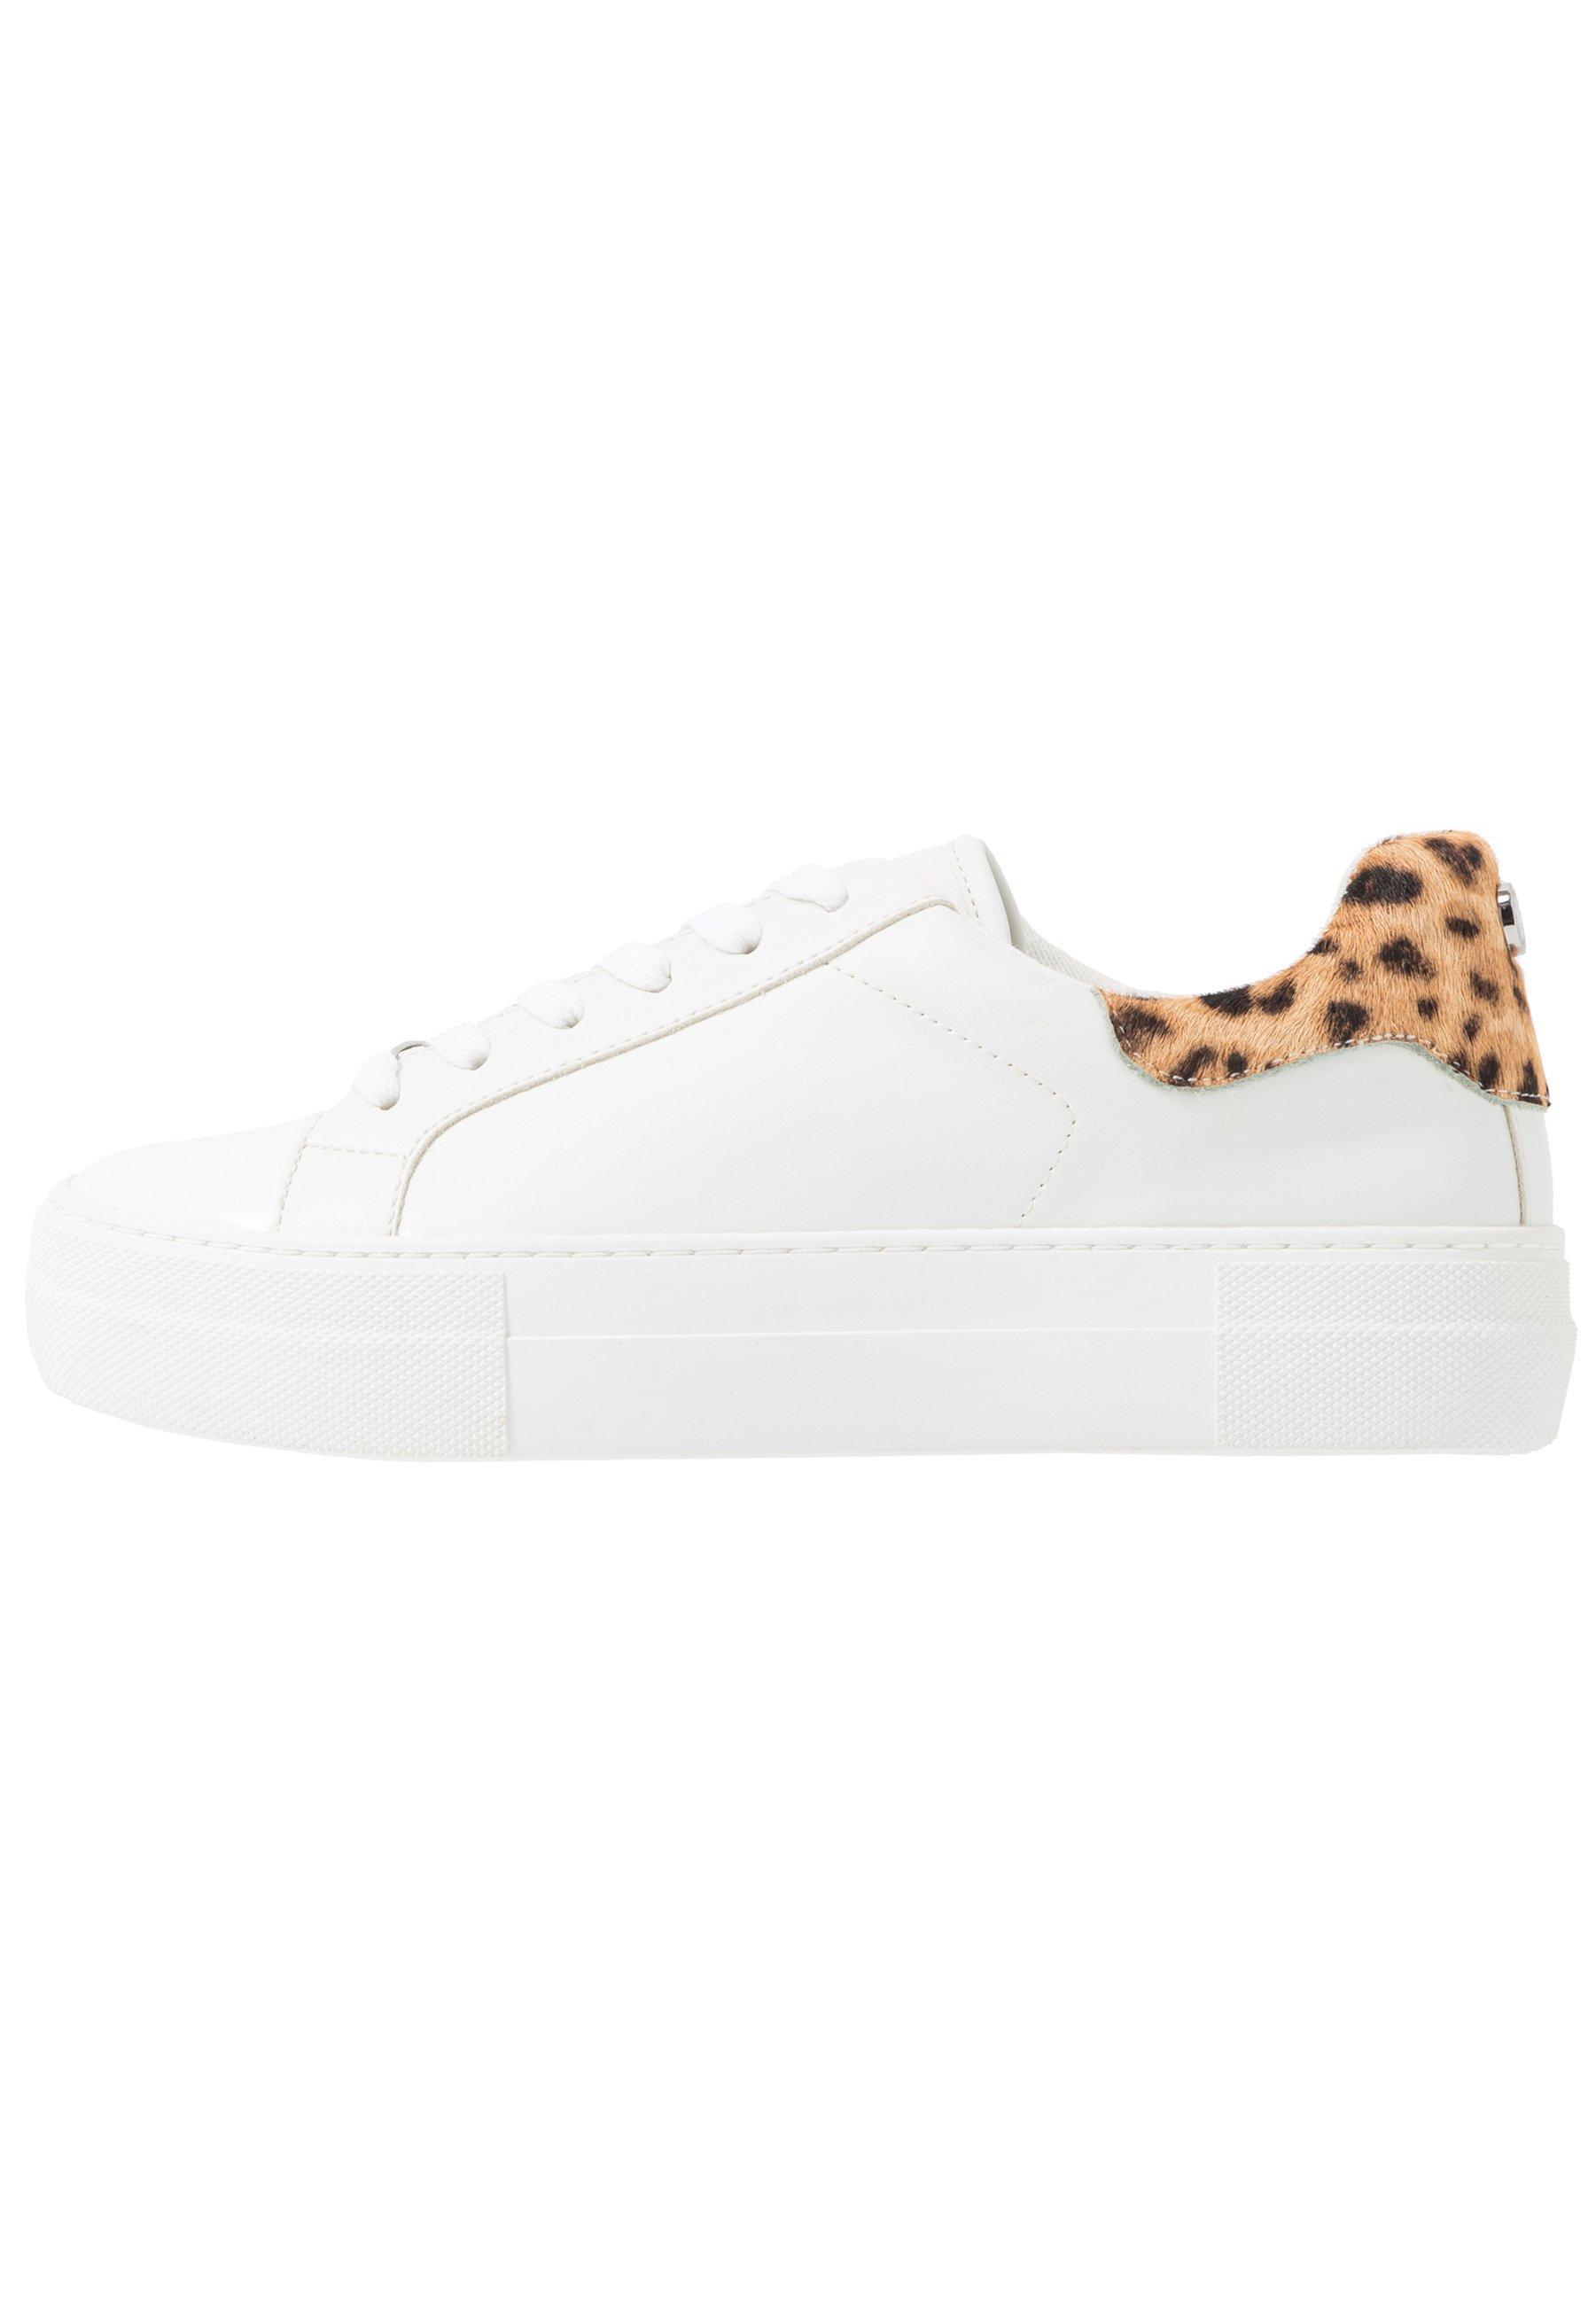 Steve Madden Merger - Sneakers Multicolor